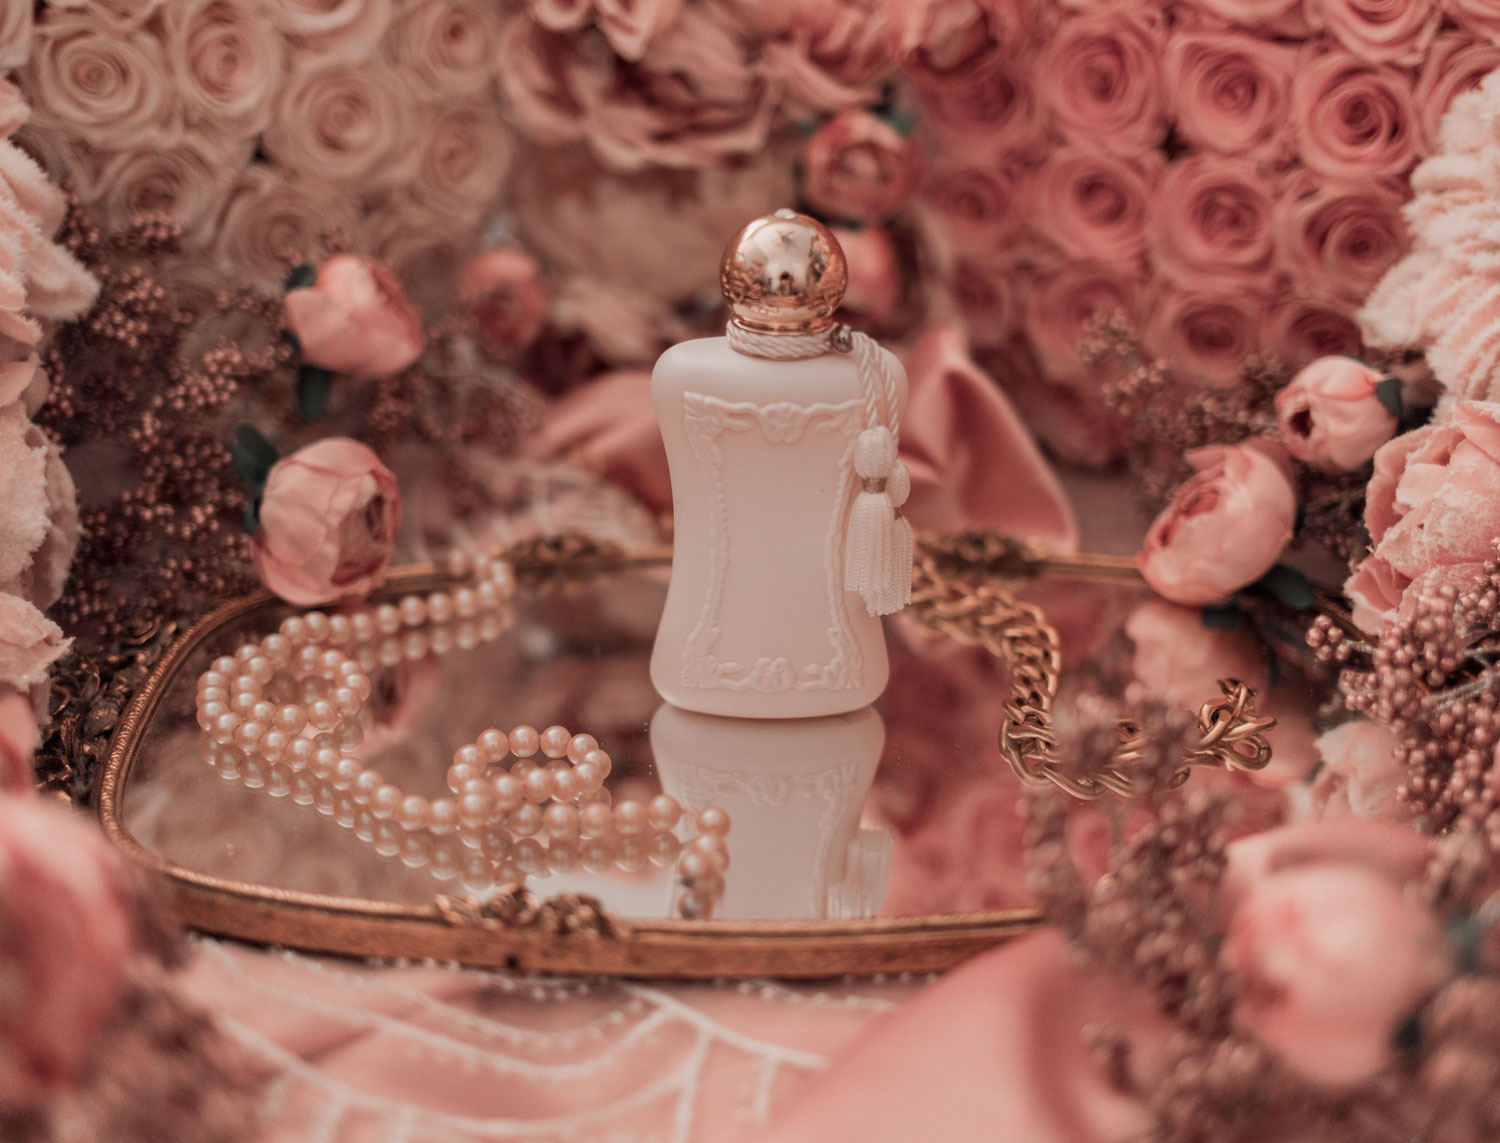 Feminine fashion and beauty blogger Elizabeth Hugen of Lizzie in Lace shares the Parfums de Marly feminine perfume collection including Sedbury